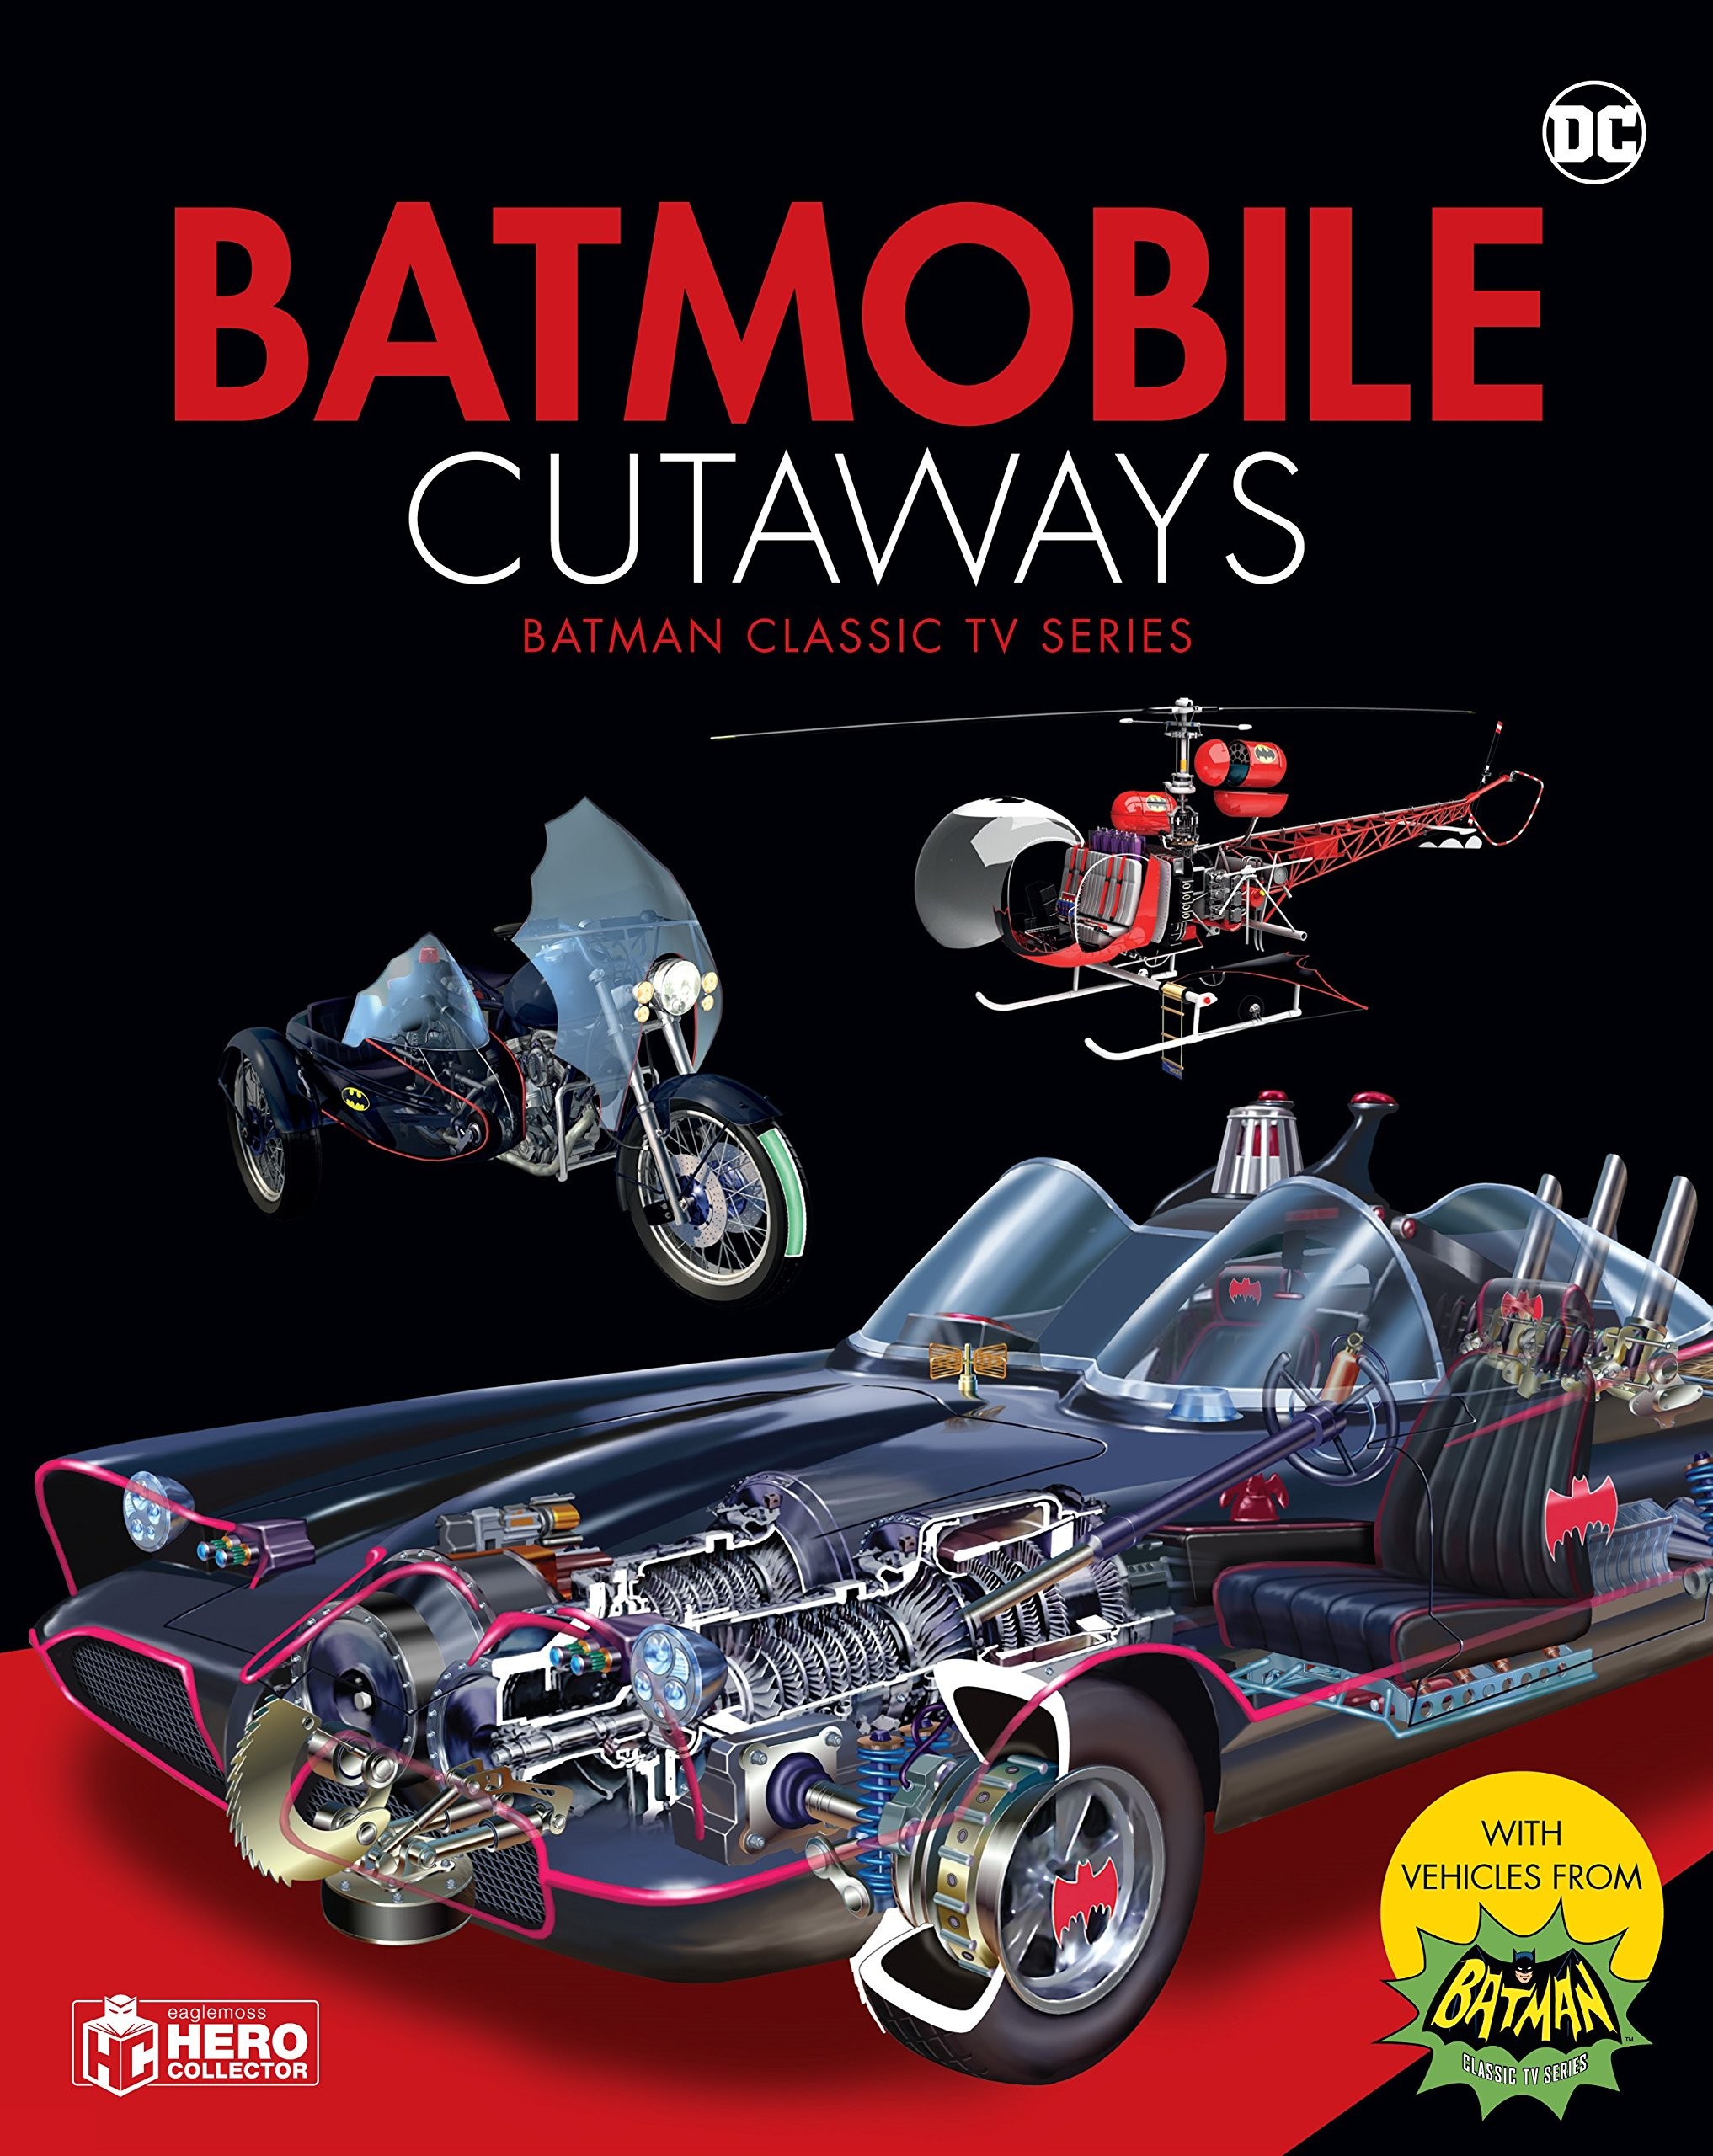 Batmobile Cutaways thumbnail